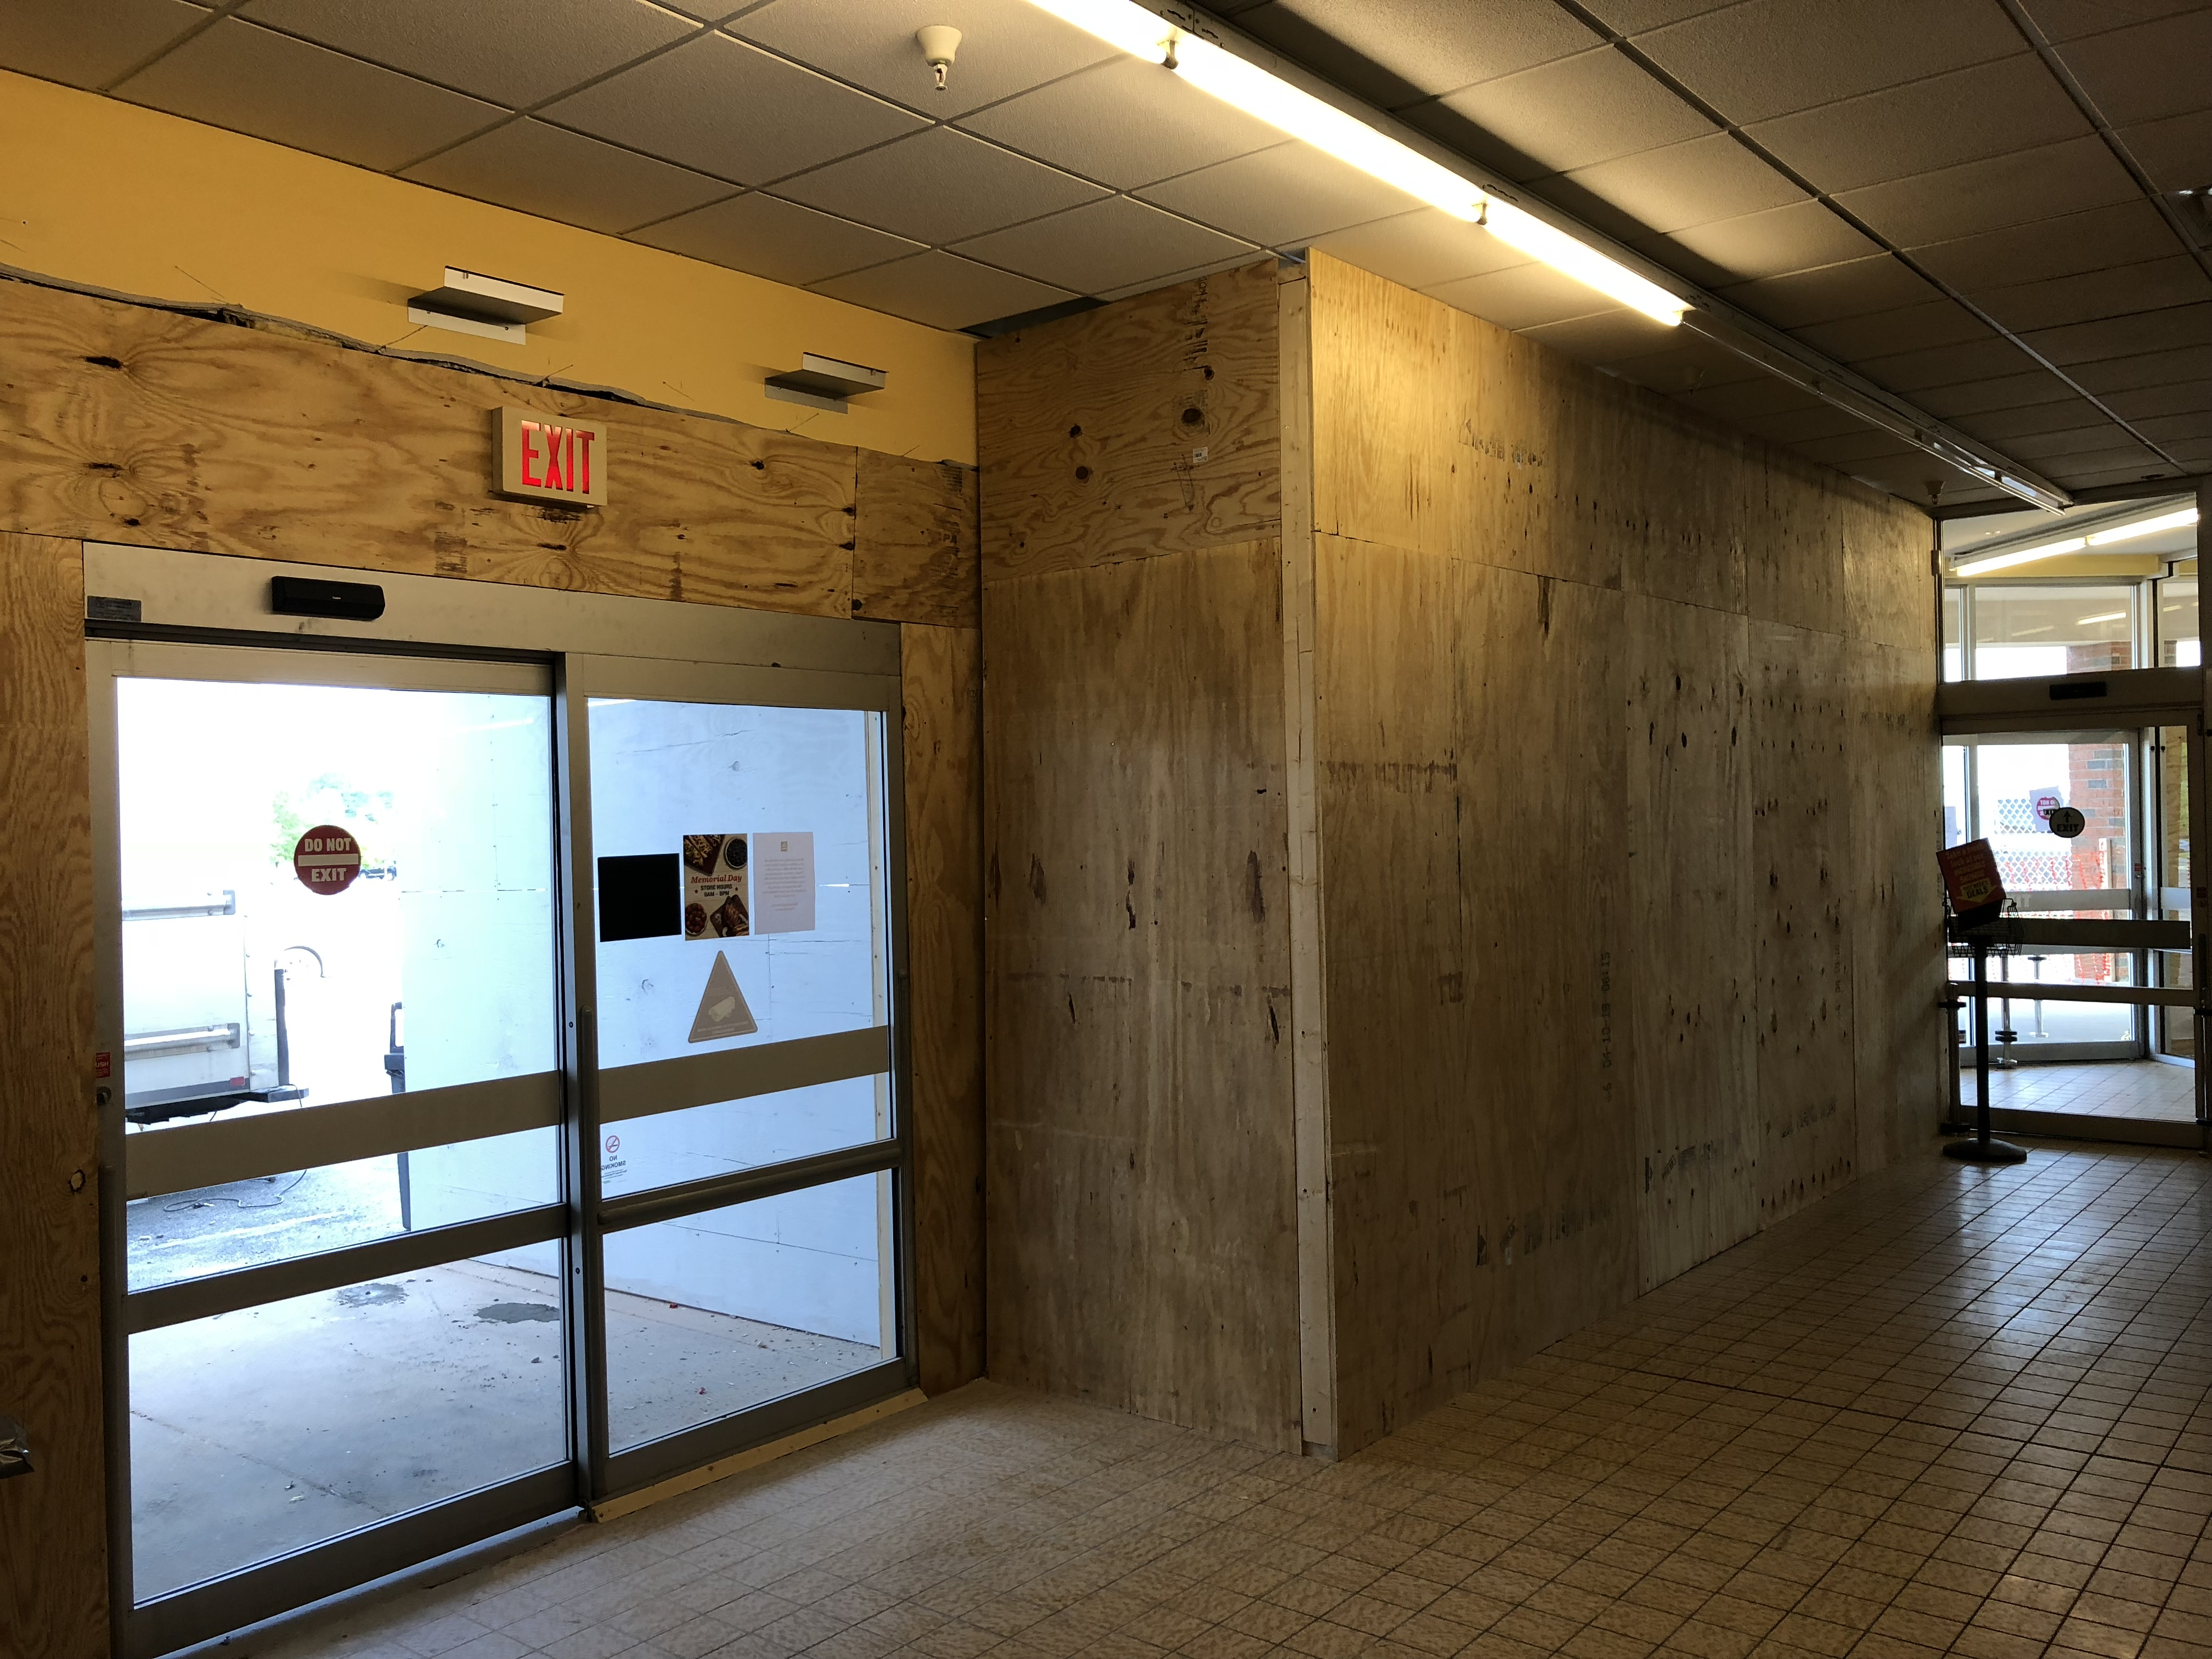 inside front door, supermarket, retail, commercial, grocery, commercial construction